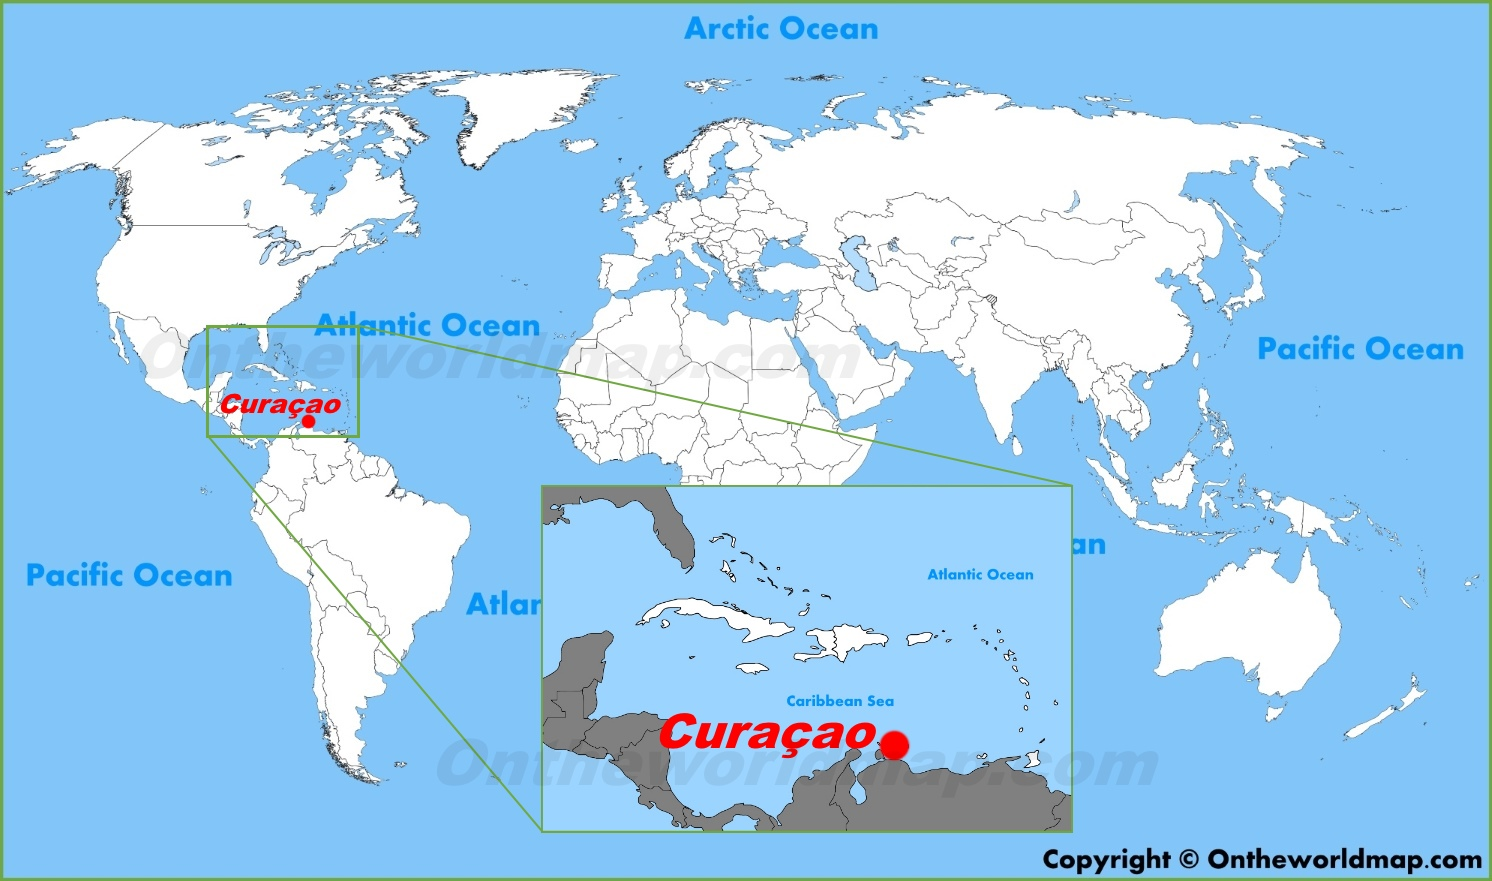 Curacao Location On World Map.Curacao Location On The World Map